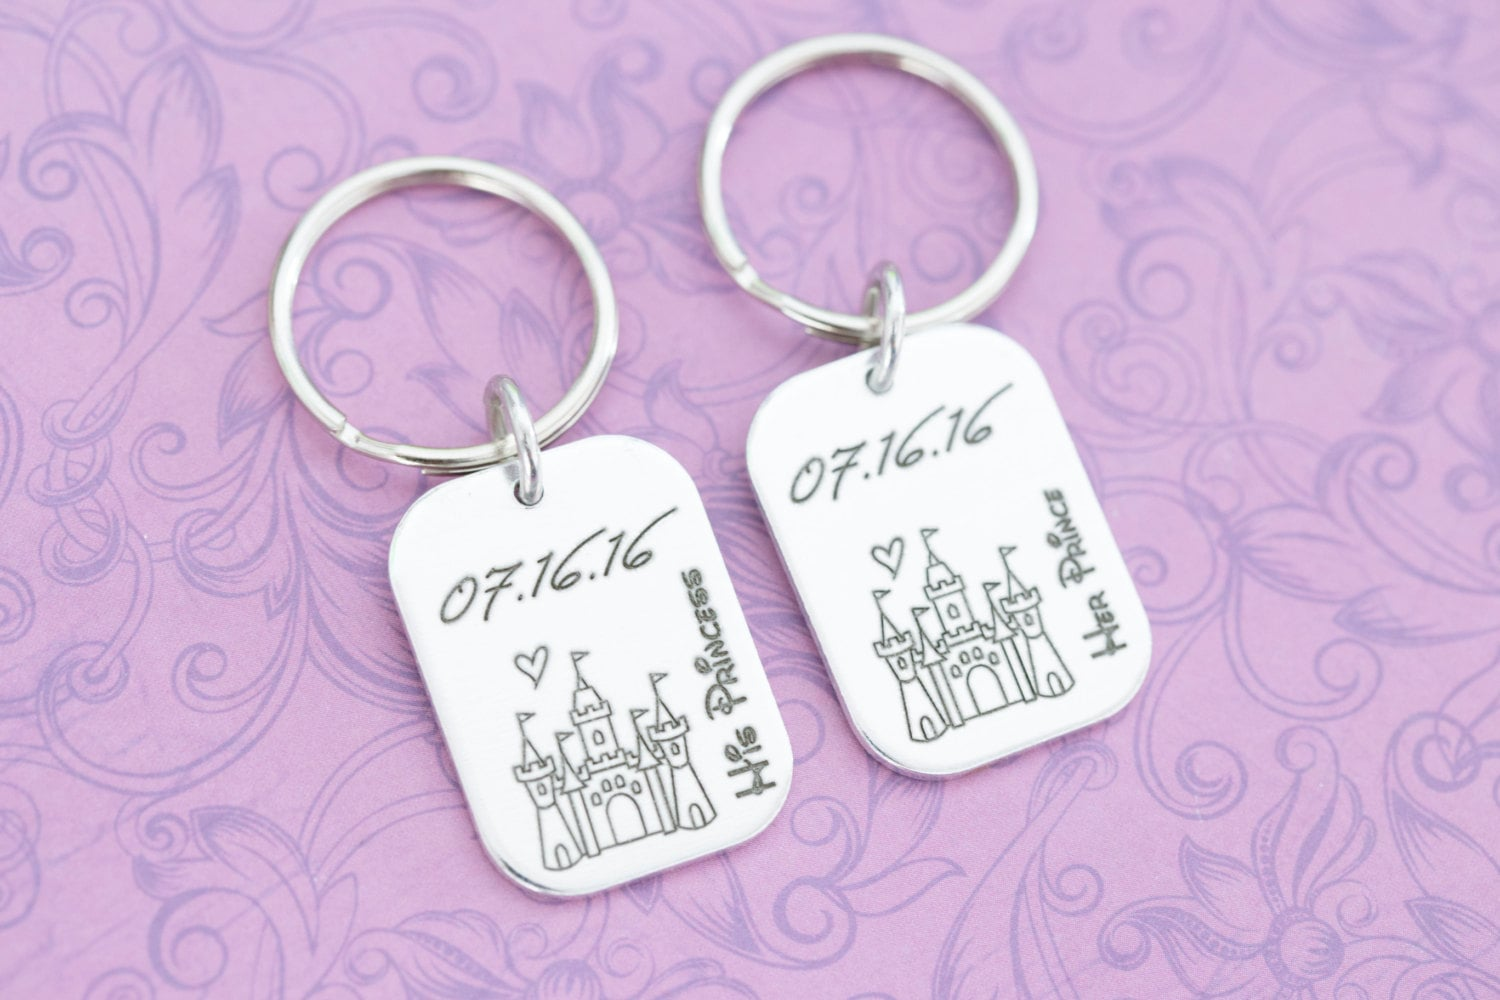 Engraved Keychains | 22 Adorable Holiday Gifts For Couples